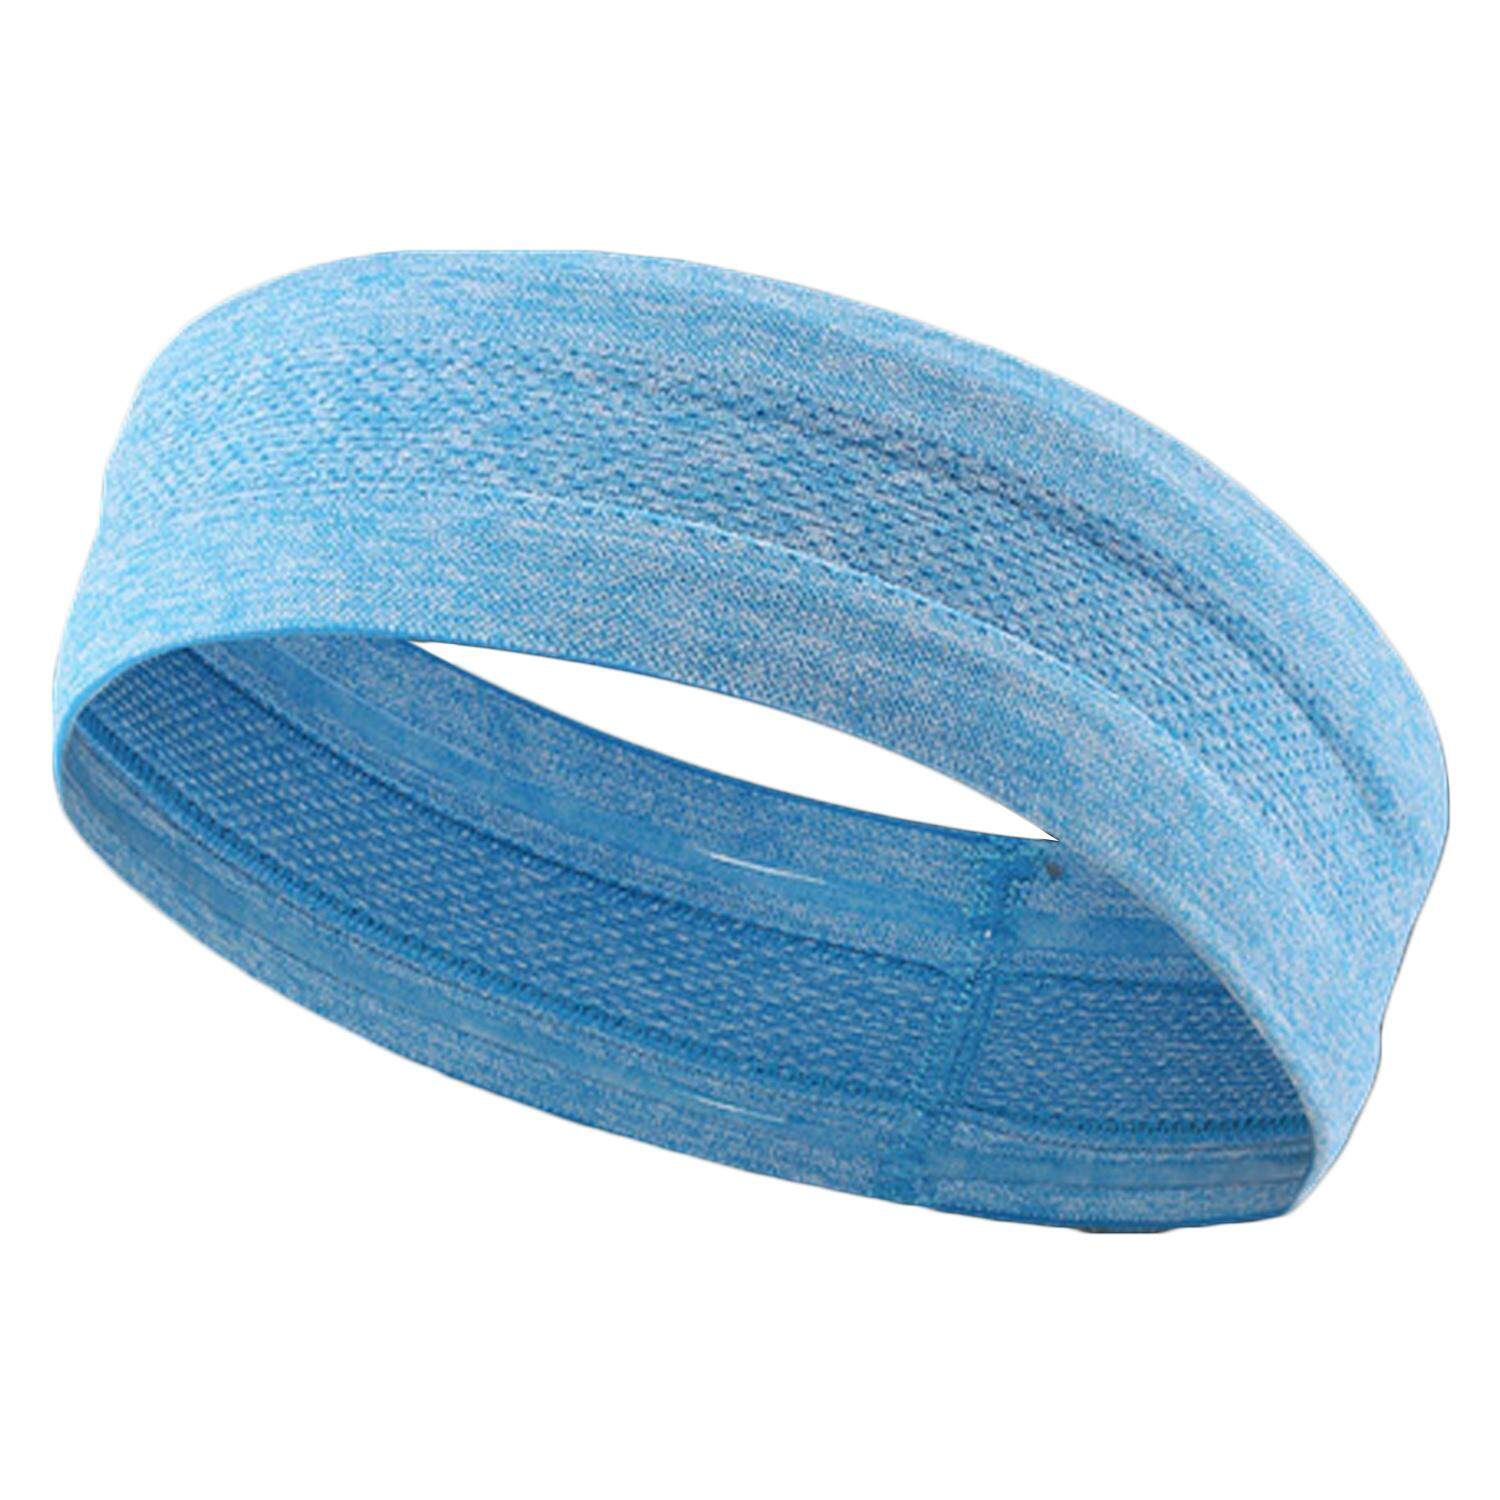 Elastic Stretch Non Slip Moisture Wicking Sports Headband Sweatband Head bands for Men Women Yoga Running Cycling Tennis Workout (Blue/Black/Grey/Rose) - intl